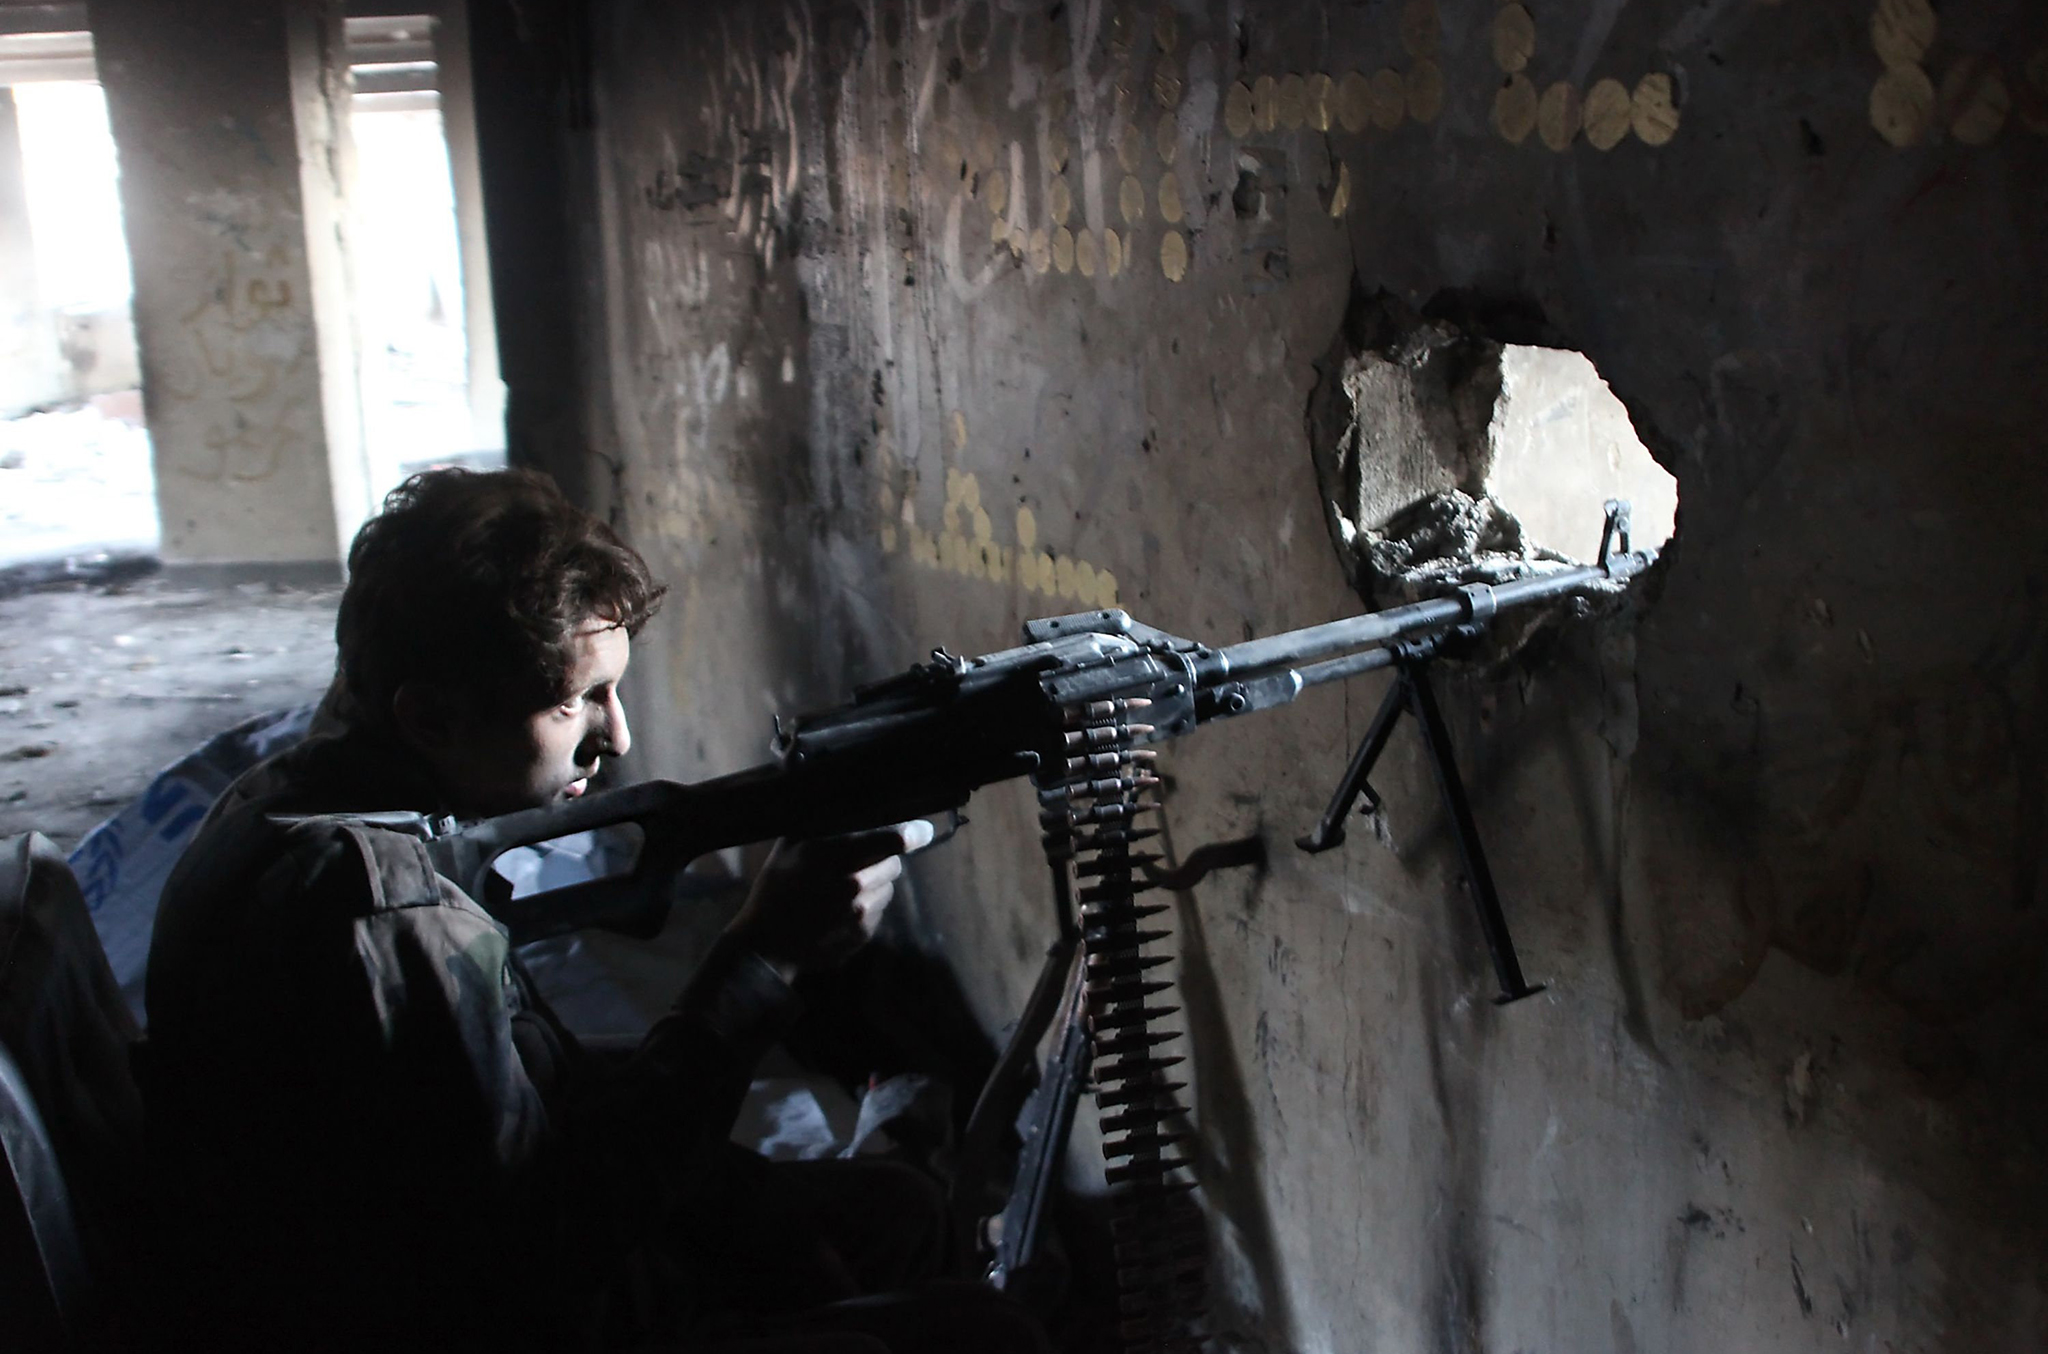 "A member of Syria's pro-government forces guards a look out point as they advance Aleppo's rebel-held Bustan al-Basha neighbourhood on October 6, 2016. ""Syrian regime forces advanced from the city centre north into (rebel-held) Bustan al-Basha, and seized a large athletic complex there,"" the UK-based Syrian Observatory for Human Rights said. This was the first time the regime had entered the district since 2013 and there had been fierce clashes, they added.      This was the first time the regime had entered the district since 2013 and there had been fierce clashes, he added.   / AFP PHOTO / GEORGE OURFALIANGEORGE OURFALIAN/AFP/Getty Images"